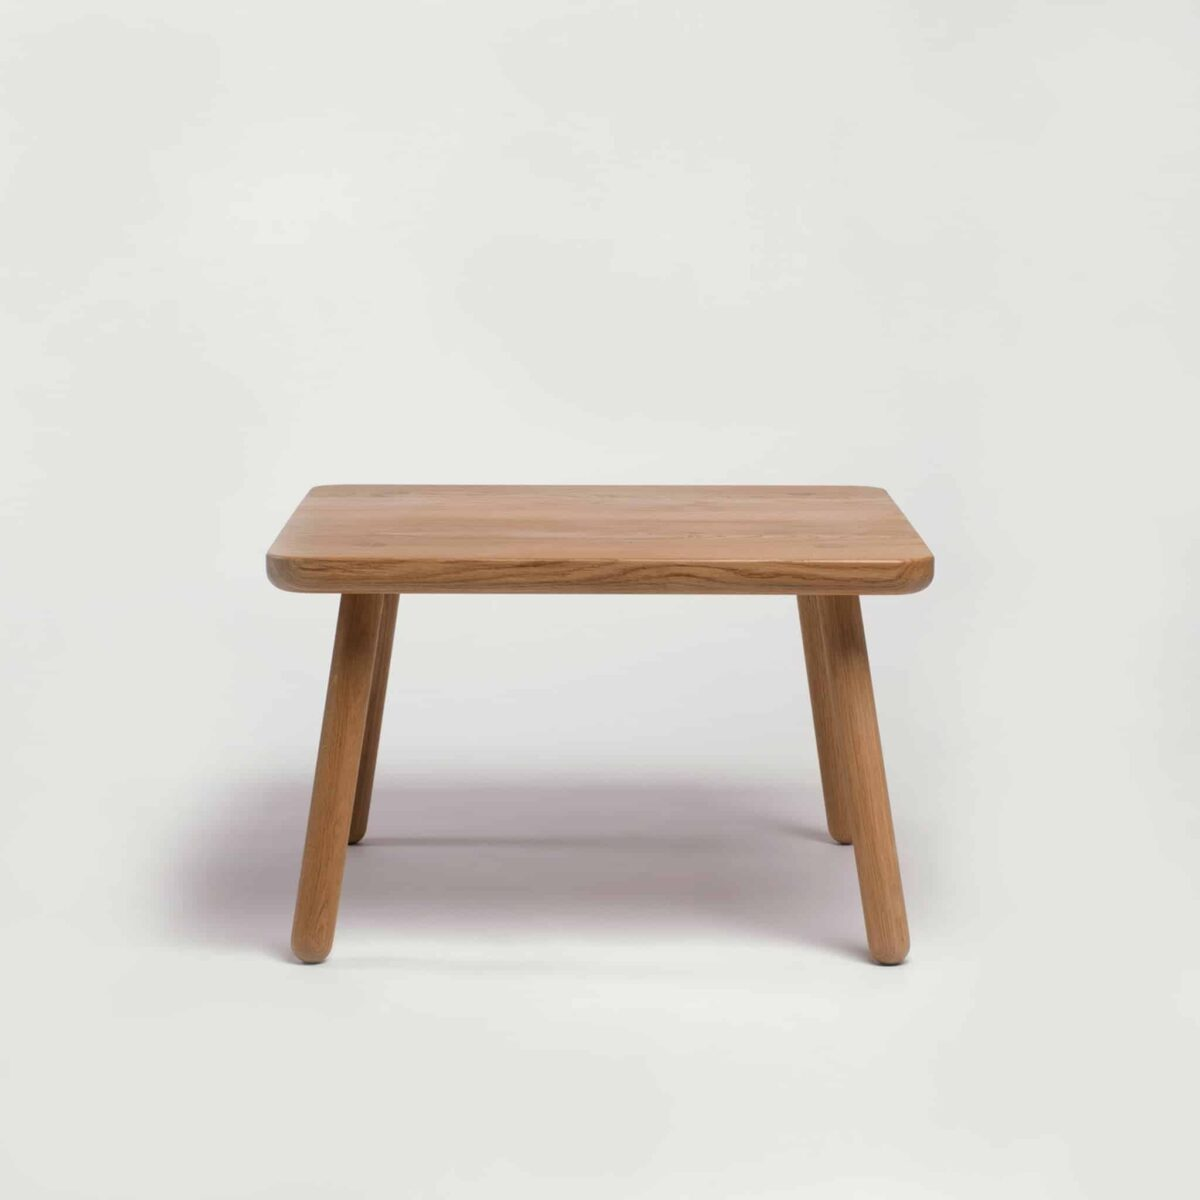 series-one-coffee-table-square-another-country-001.jpg